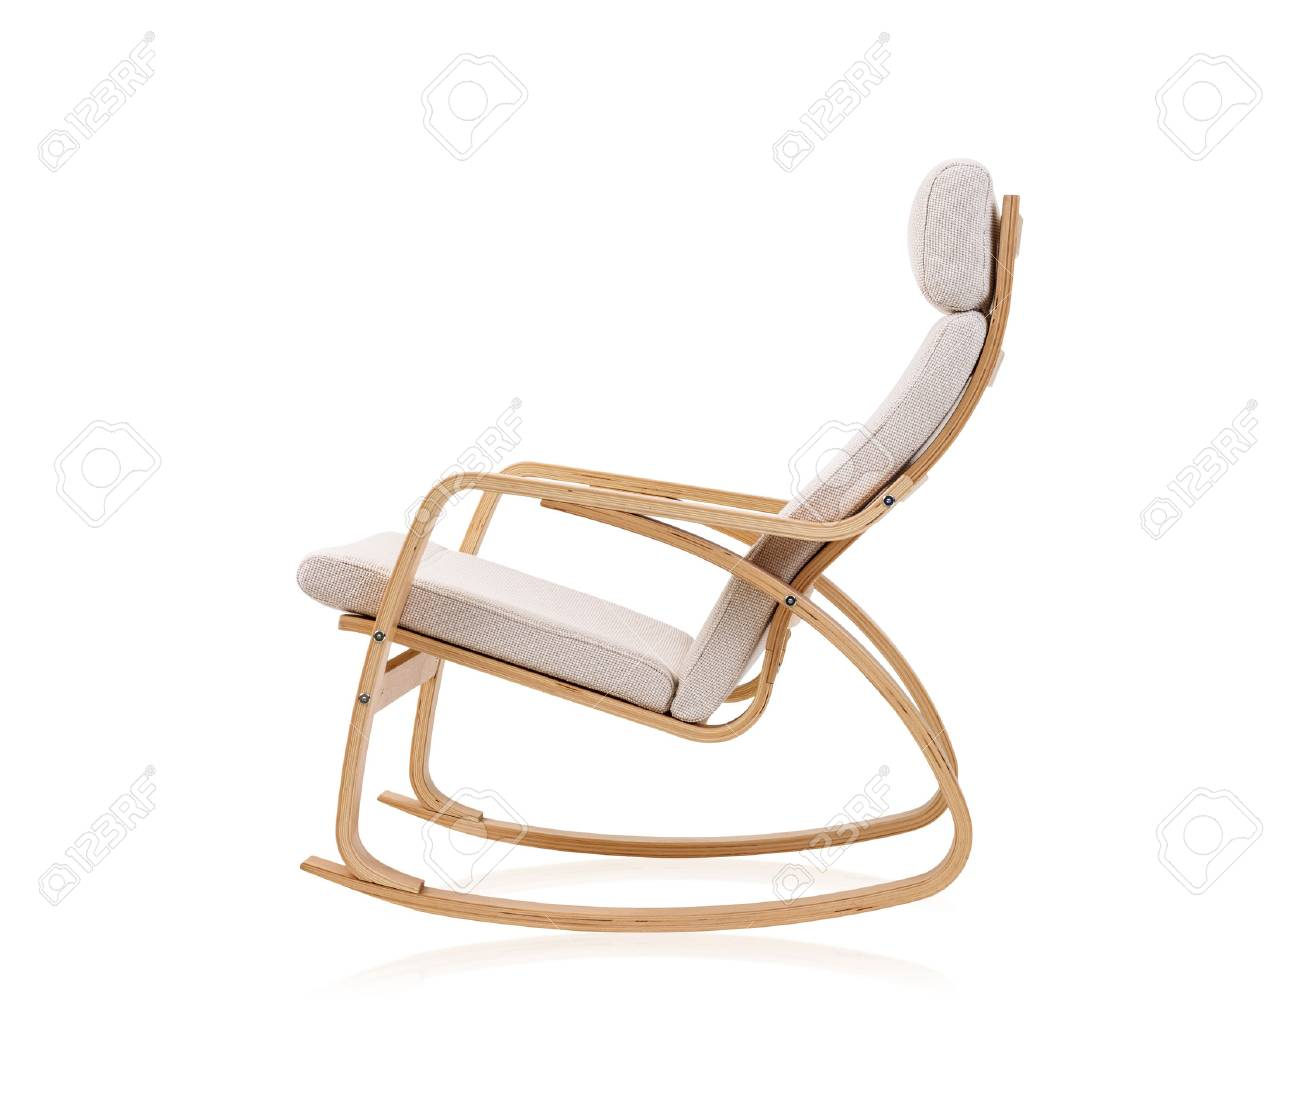 Peachy Modern Rocking Chair Isolated On White Background Bralicious Painted Fabric Chair Ideas Braliciousco